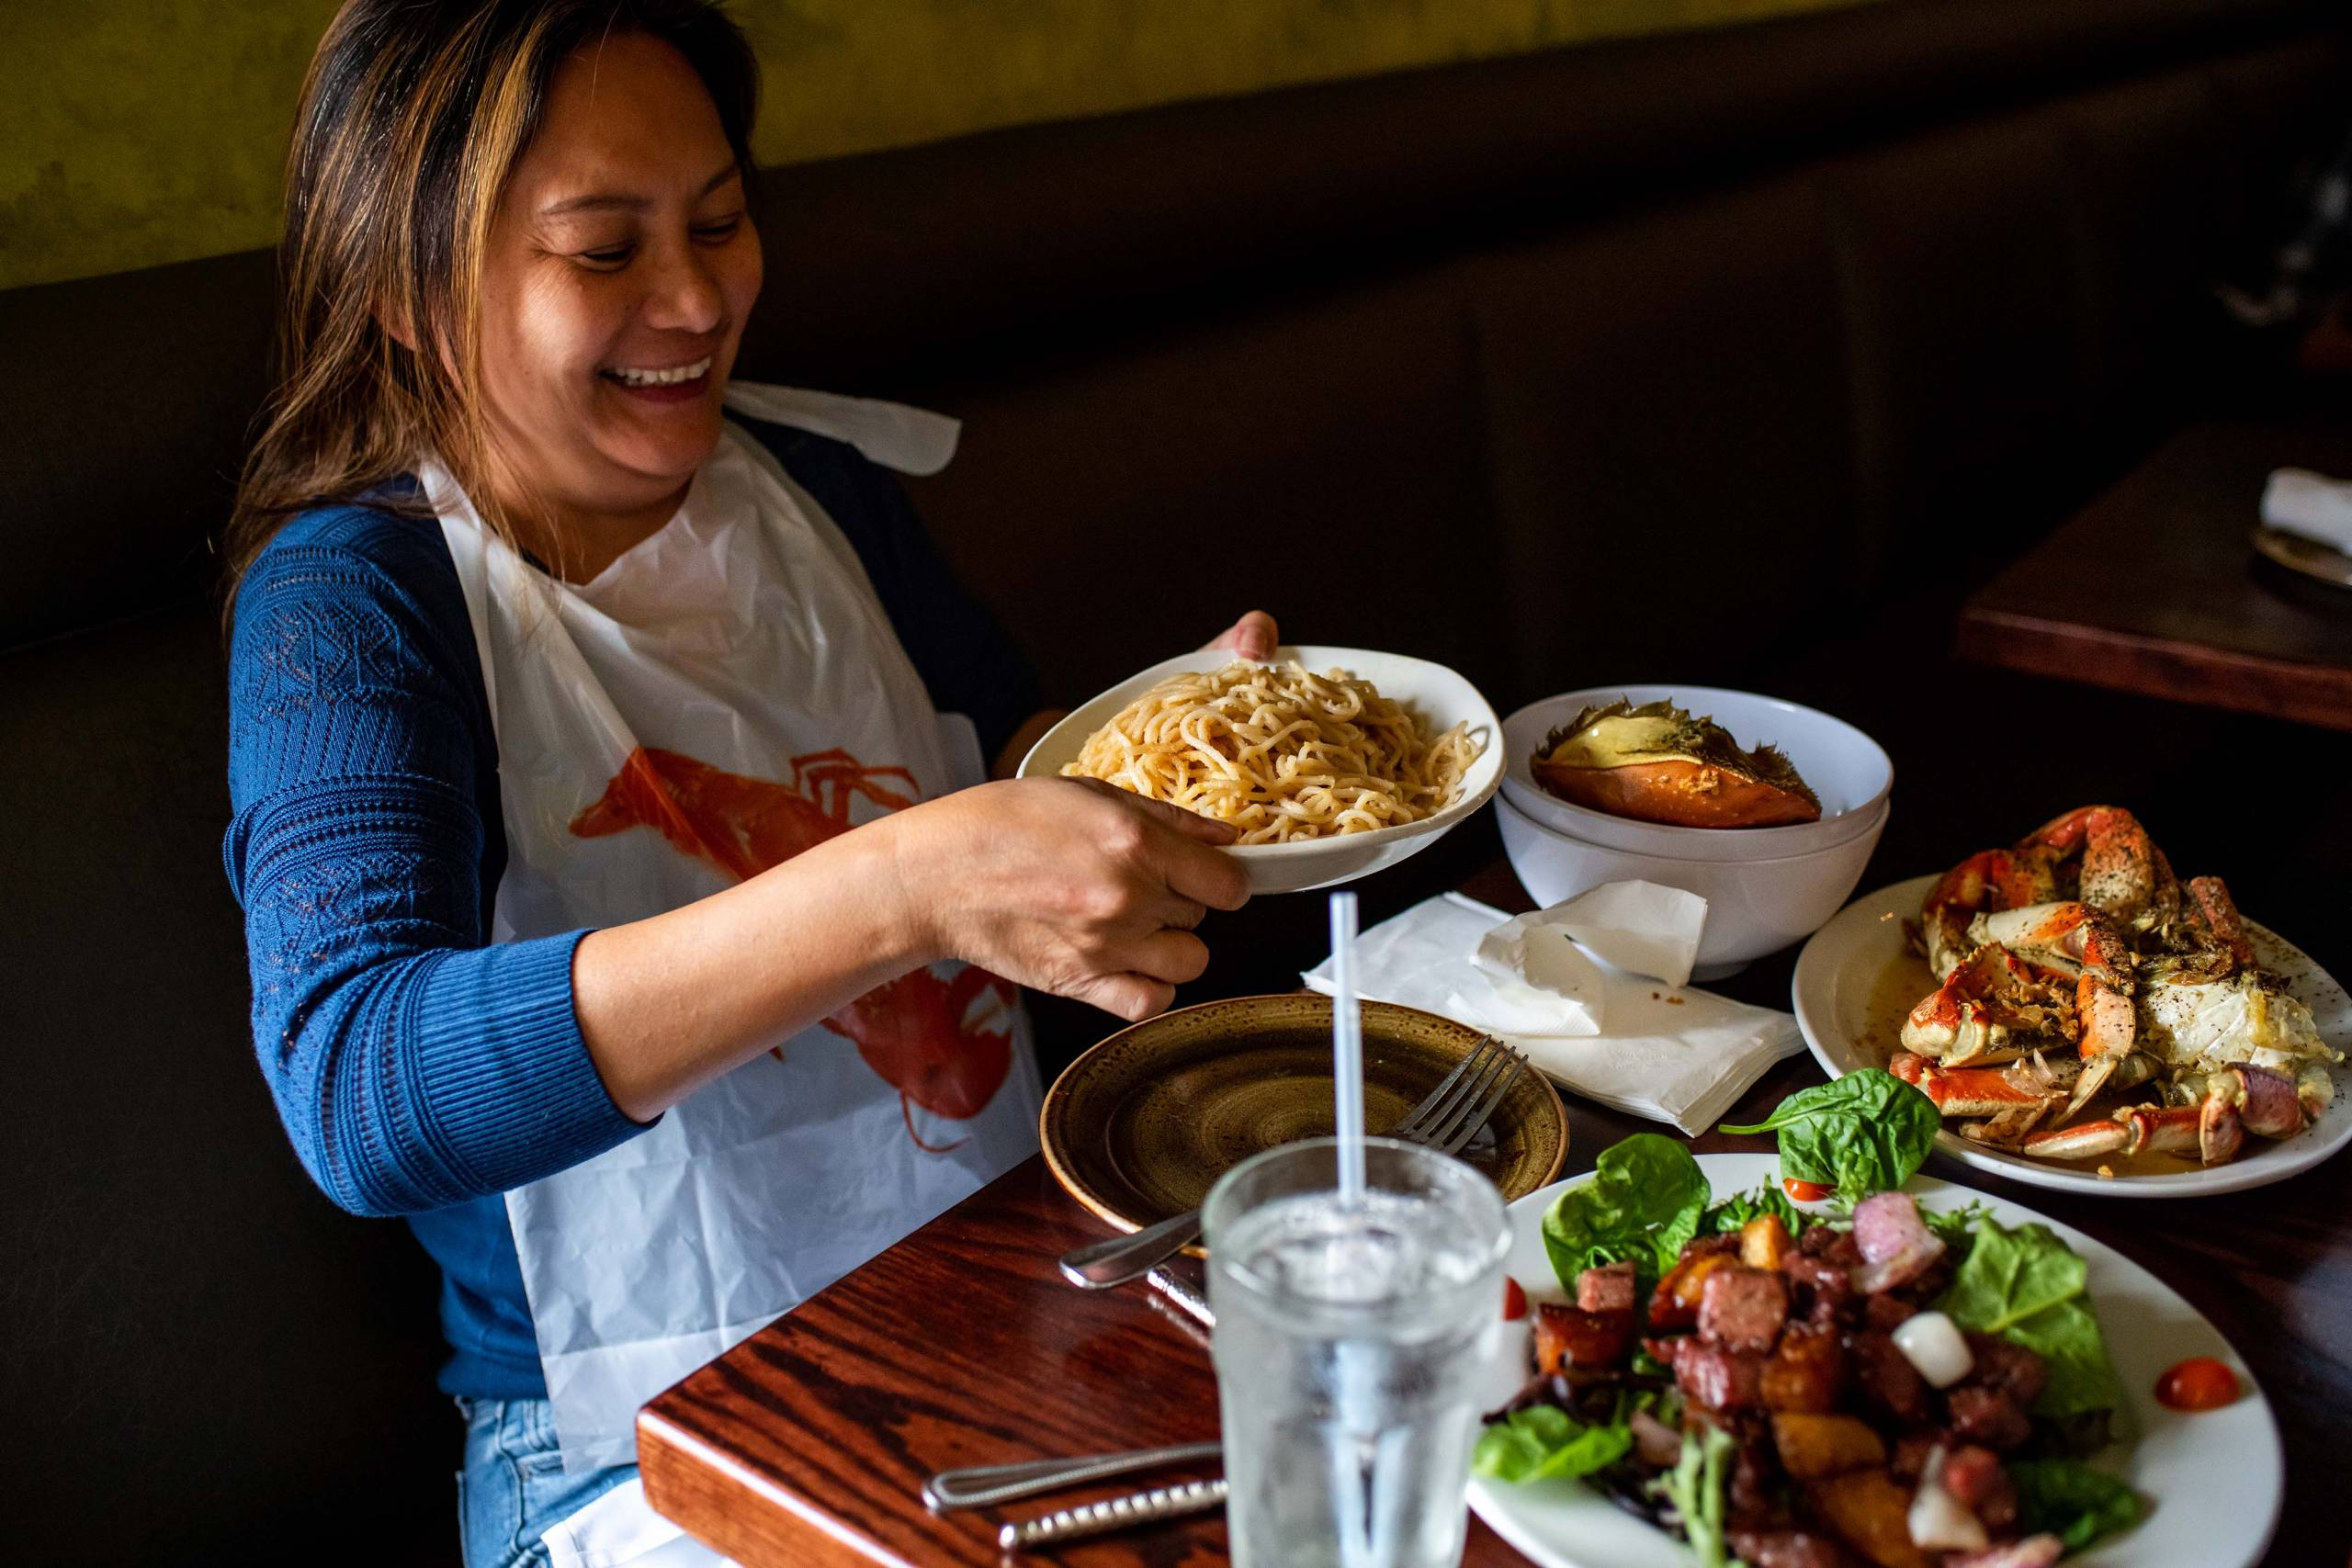 A customer wearing a plastic bib prepares to dig in to a plate of garlic noodles.